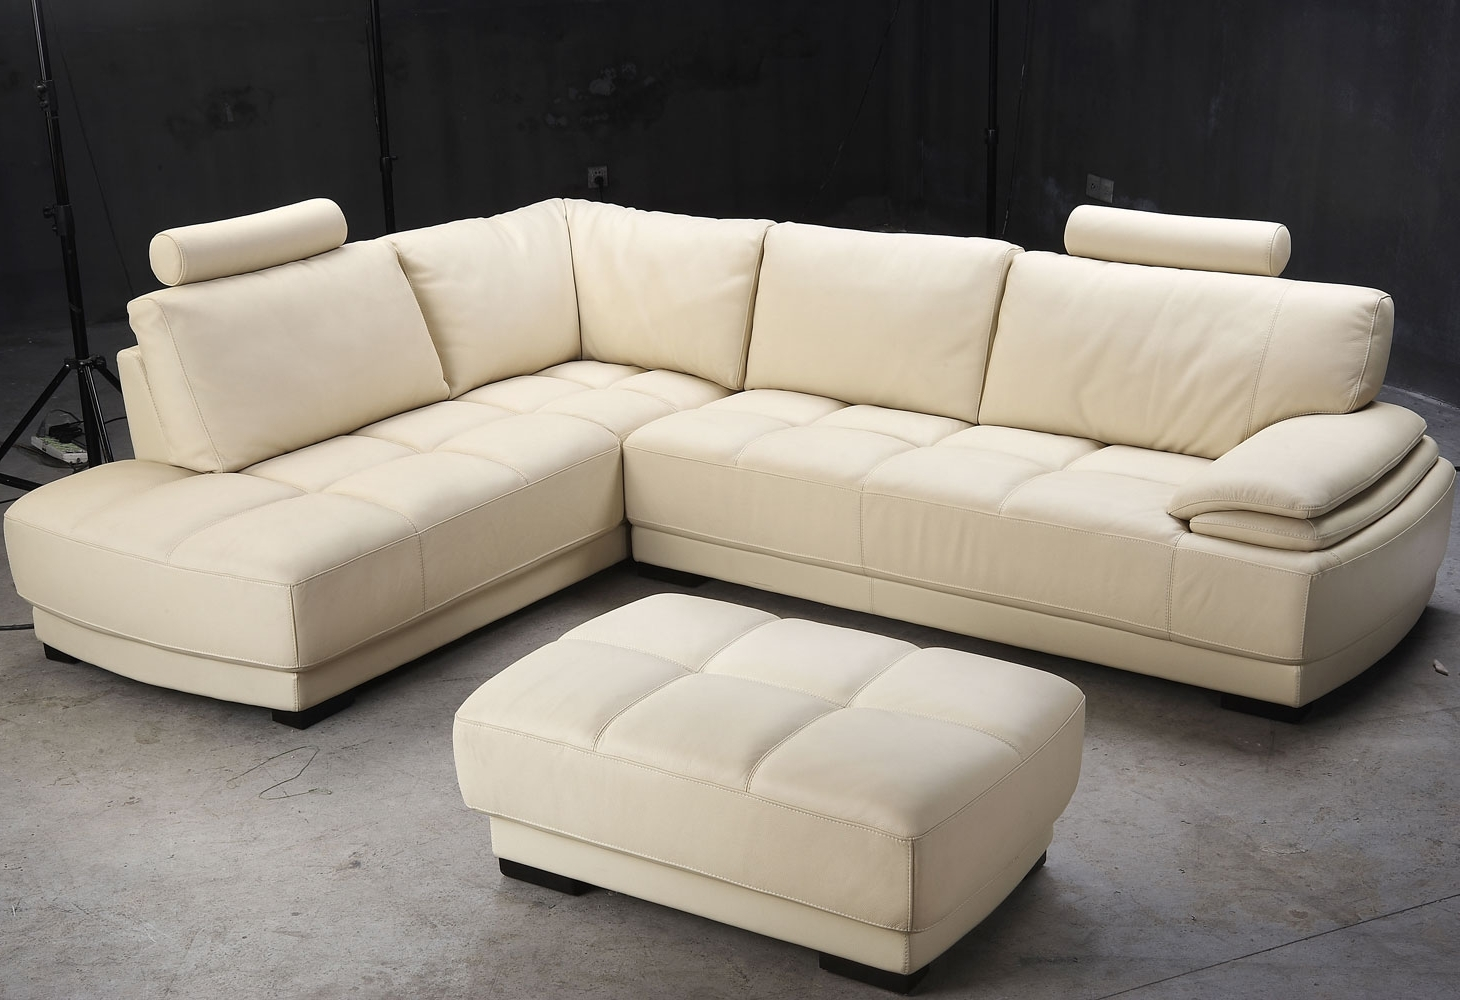 White Ivory Leather L Shaped Sectional Sofa With Chaise Of Throughout Well Known L Shaped Sectional Sleeper Sofas (View 19 of 20)